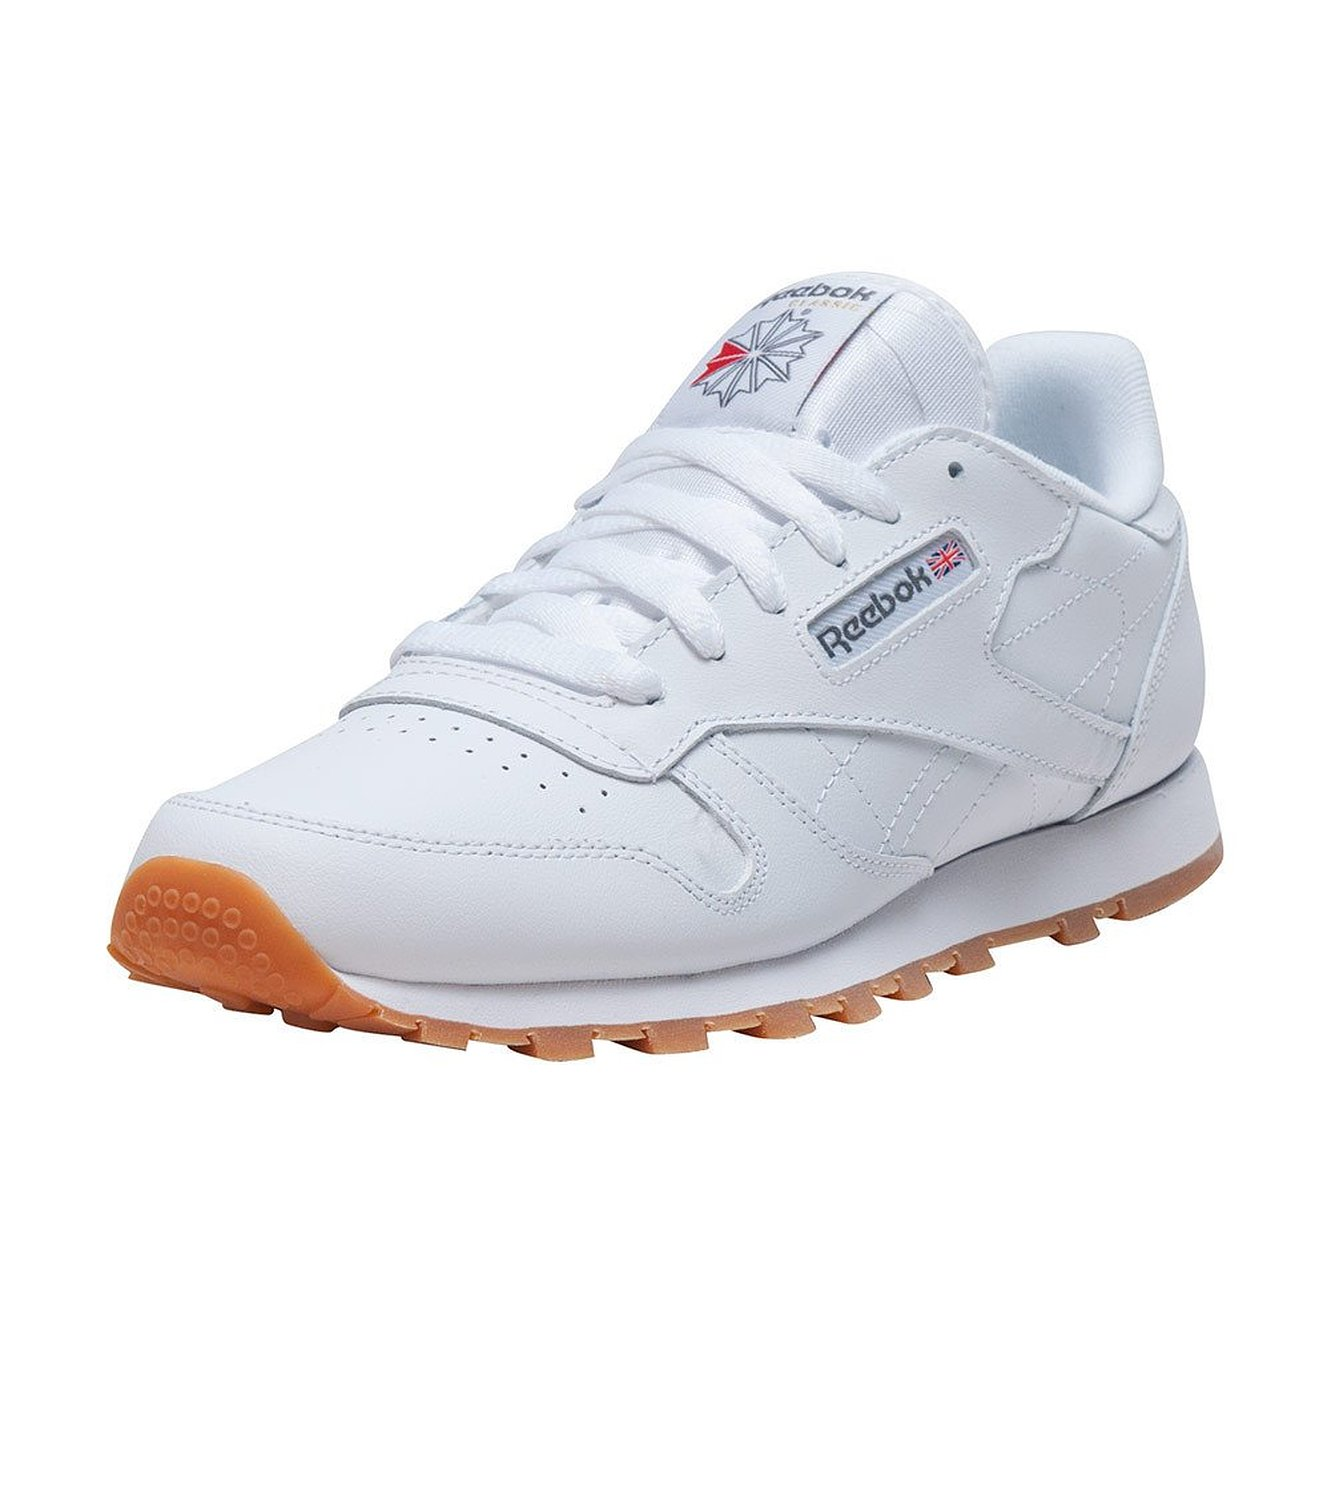 c370fbbe5b9 Get Quotations · Reebok Classic Leather White Gum GS Sneakers